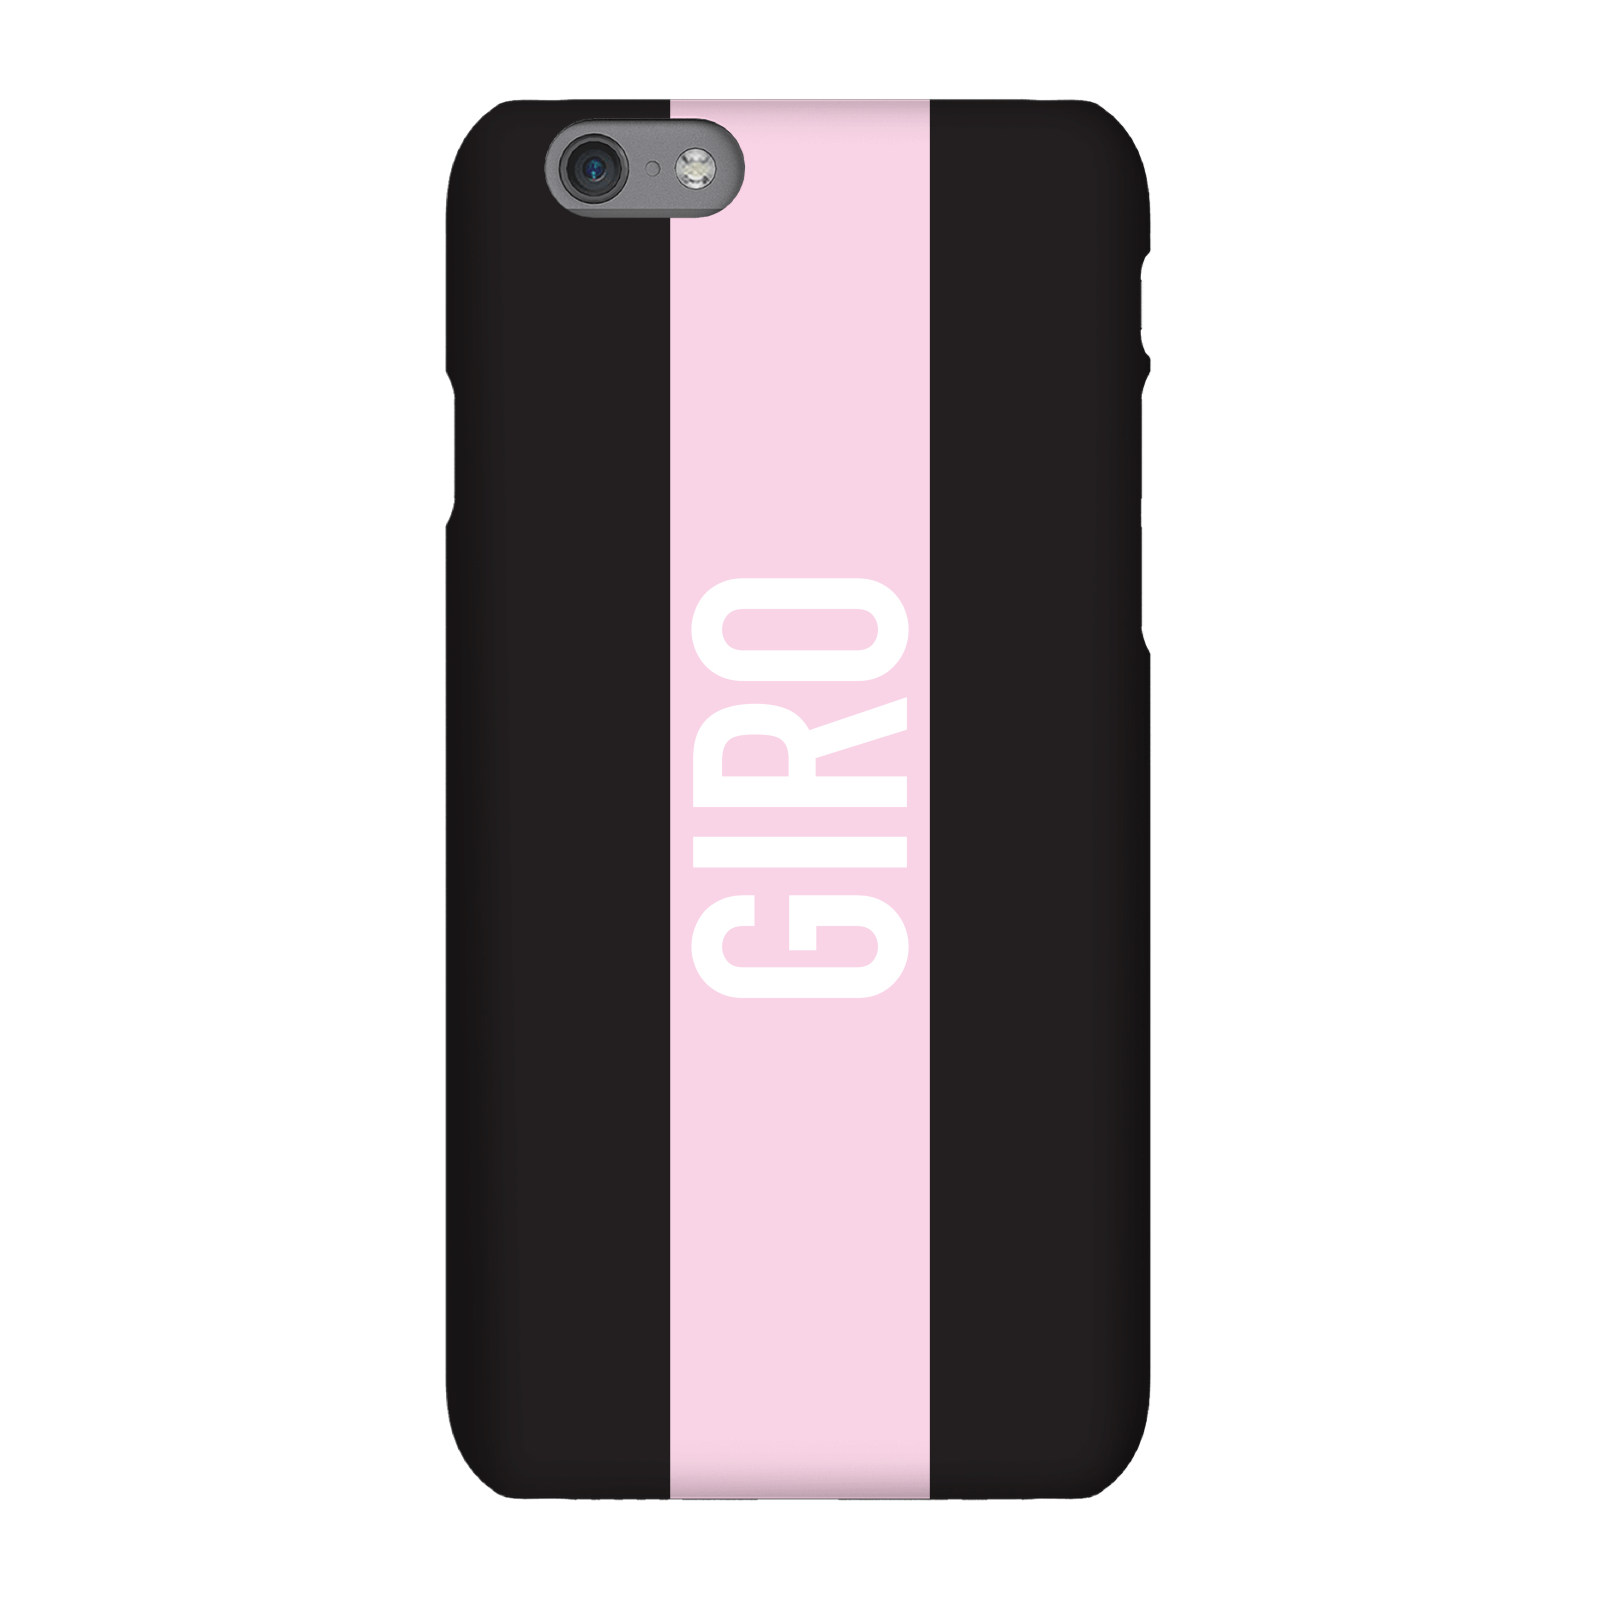 Giro Phone Case For Iphone And Android - Iphone X - Snap Case - Matte